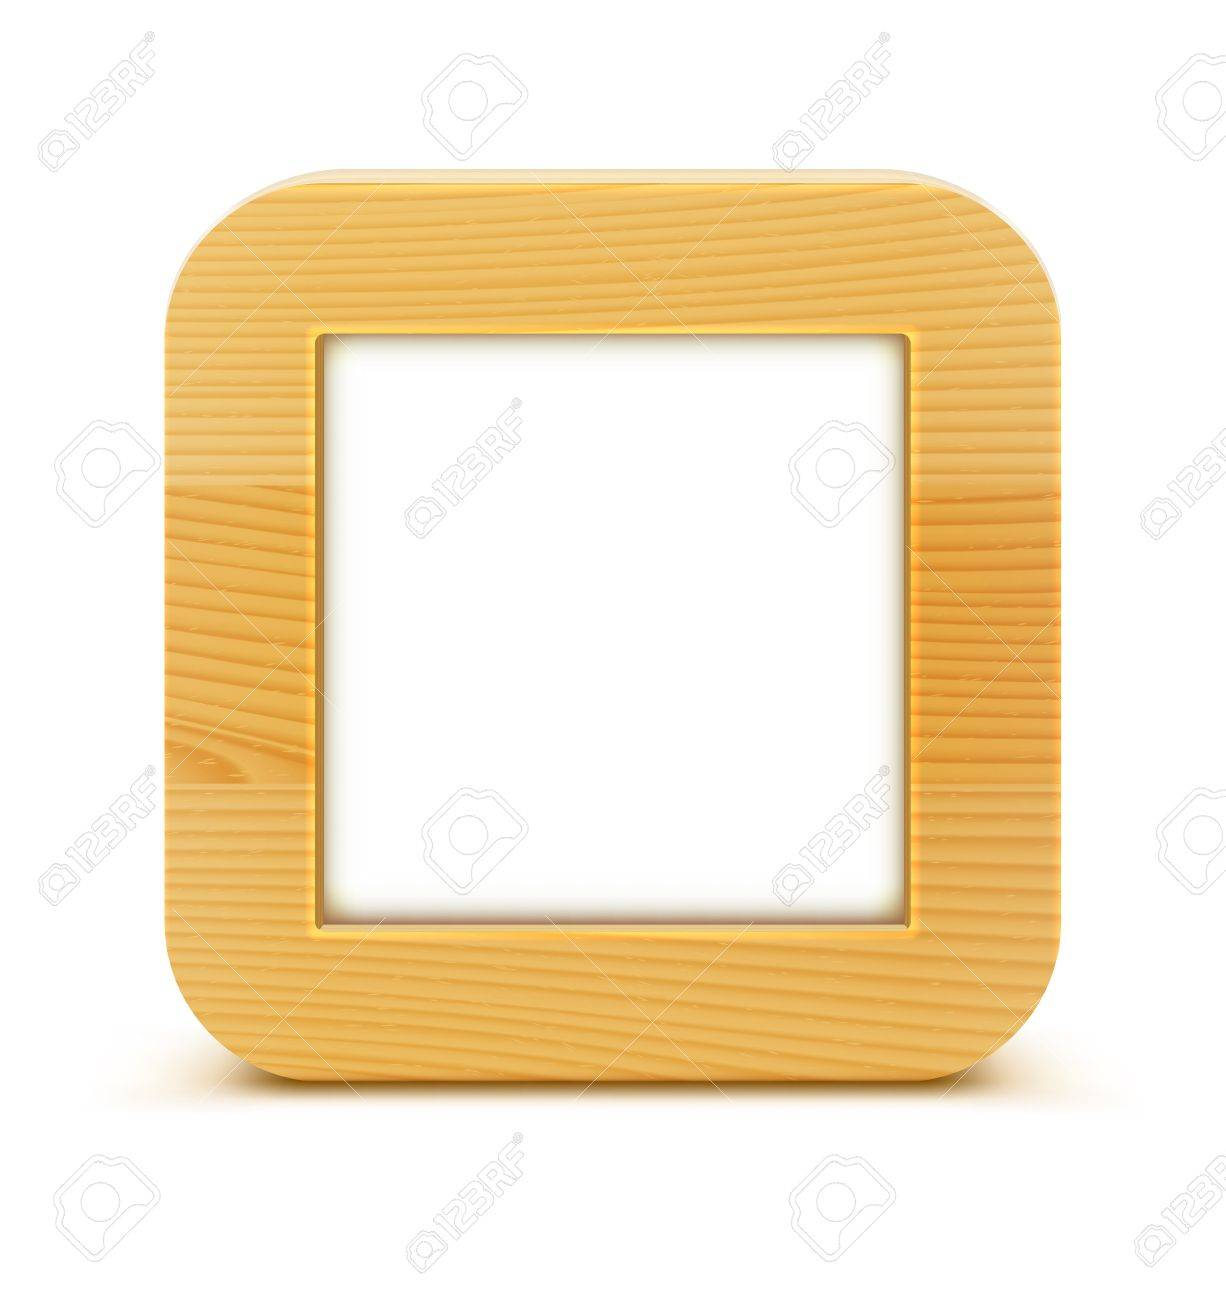 illustration of detailed square wooden frame isolated on white background. Stock Vector - 16720251